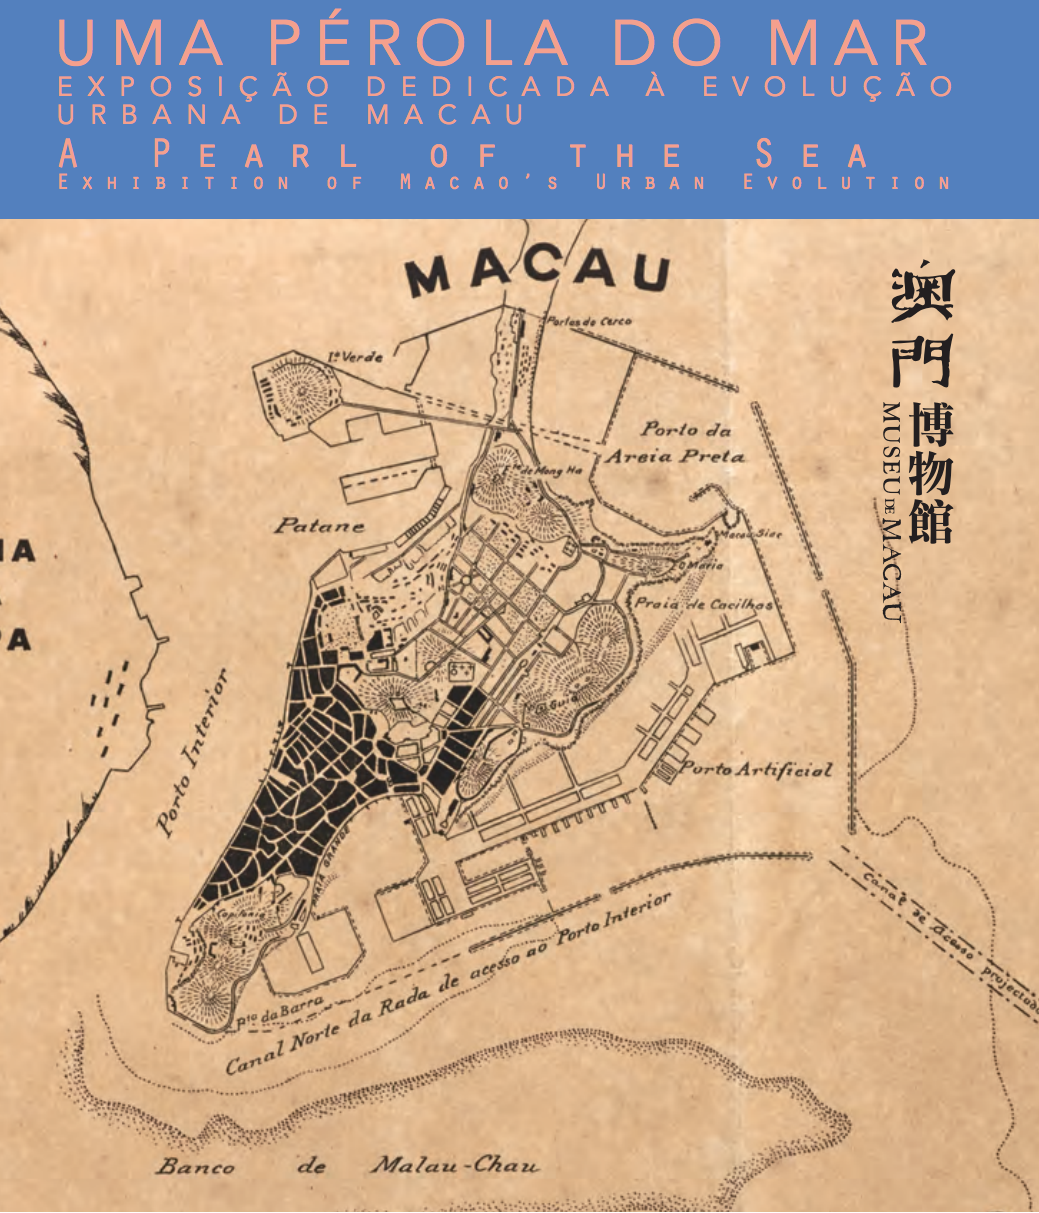 A Pearl of the Sea — Exhibition of Macaos Urban Evolution